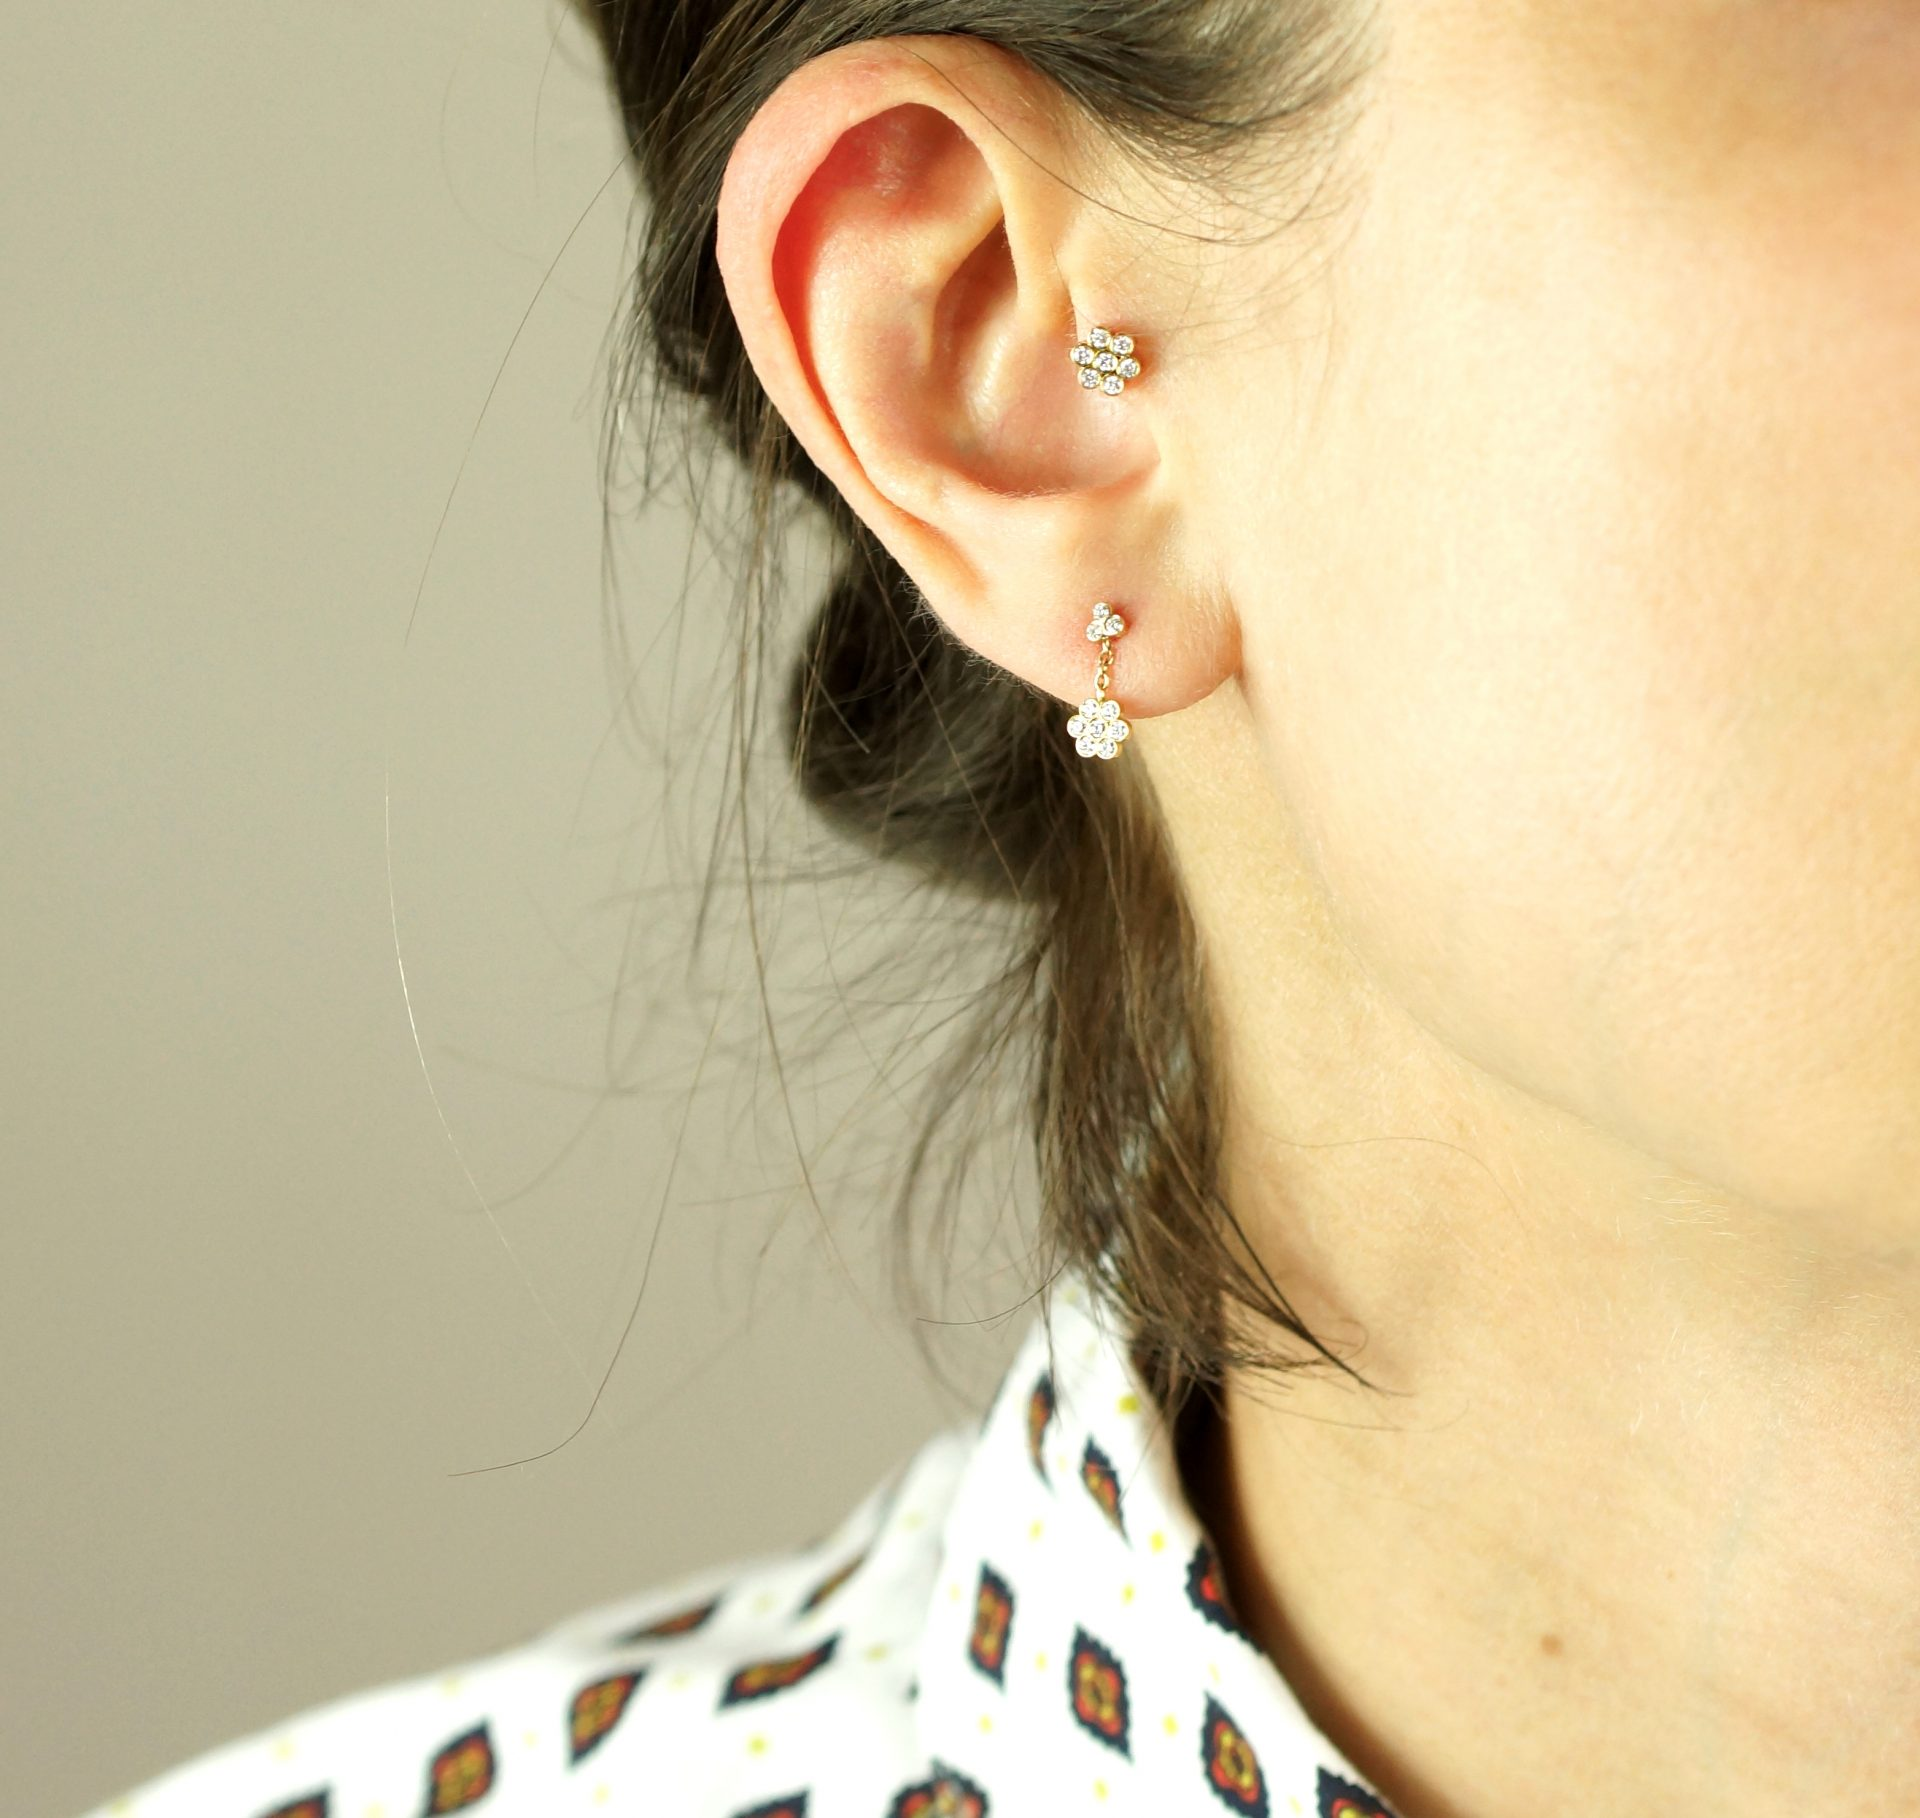 Trendy Types of Ear Piercings and Combinations – Choose Your Look! unique multiple ear piercings combination ideas